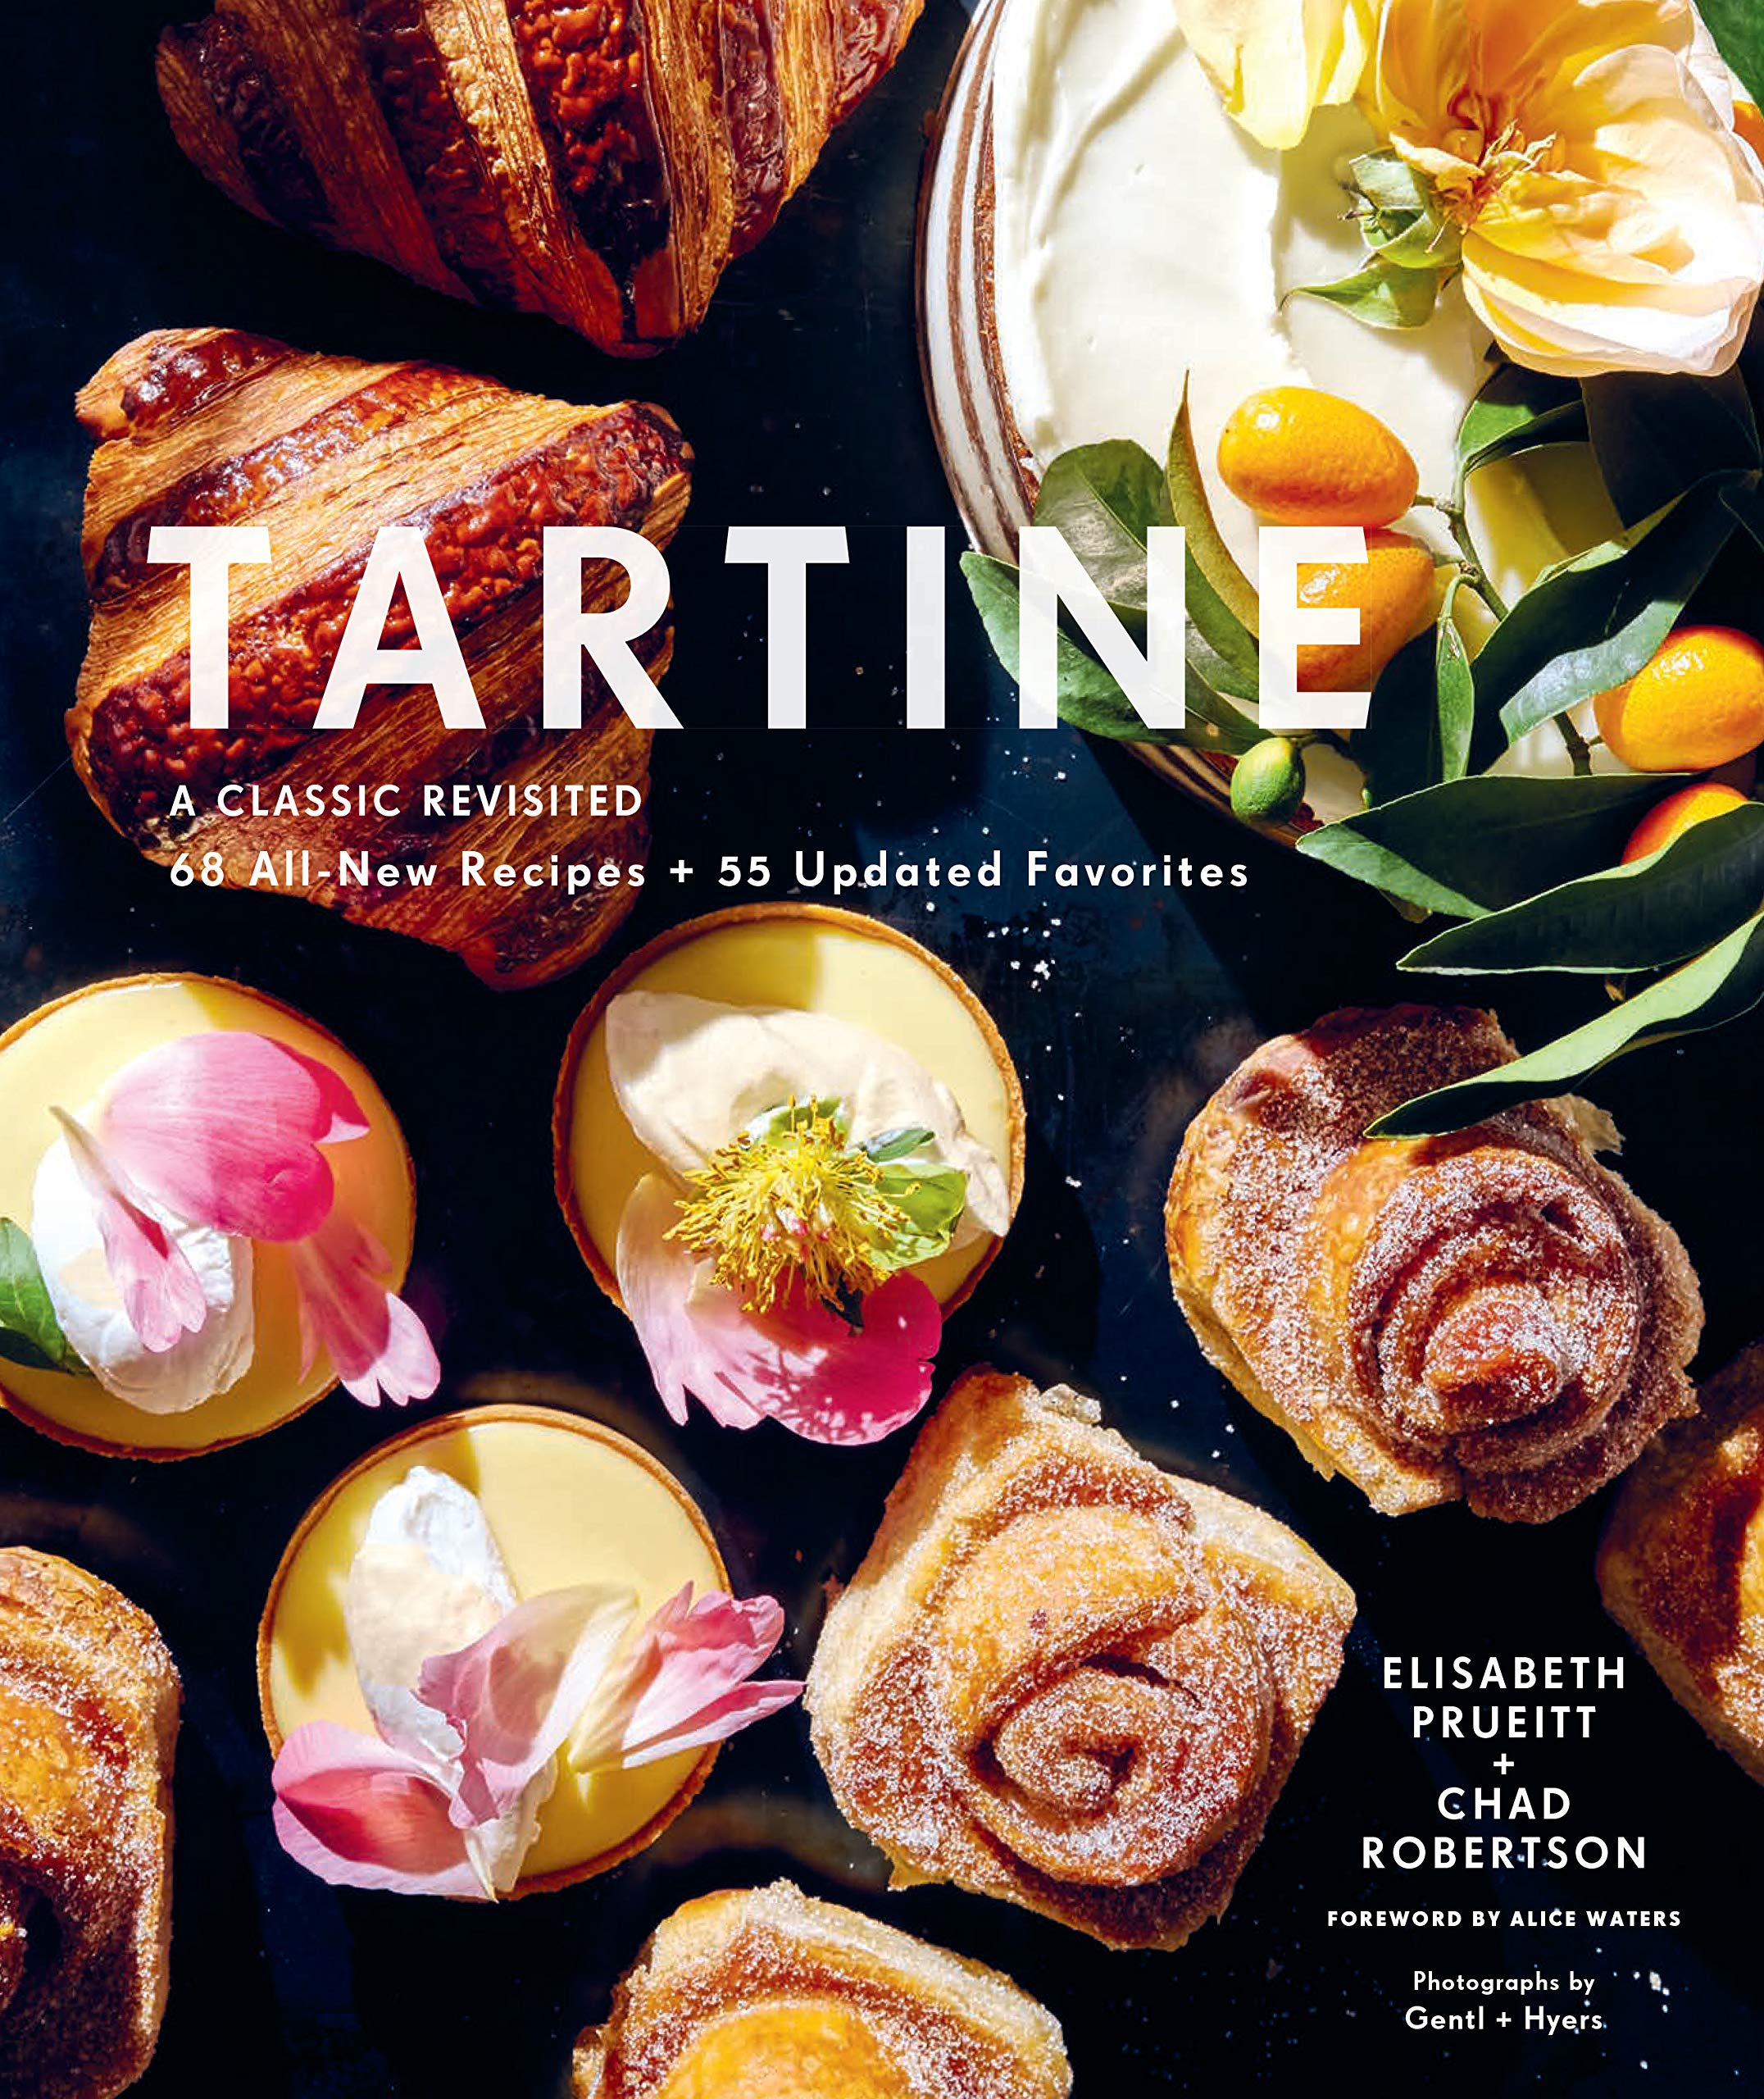 Tartine: A Classic Revisited: 68 All-New Recipes + 55 Updated Favorites (Baking Cookbooks, Pastry Books, Dessert Cookbooks, Gifts for Pastry Chefs) by Chronicle Books